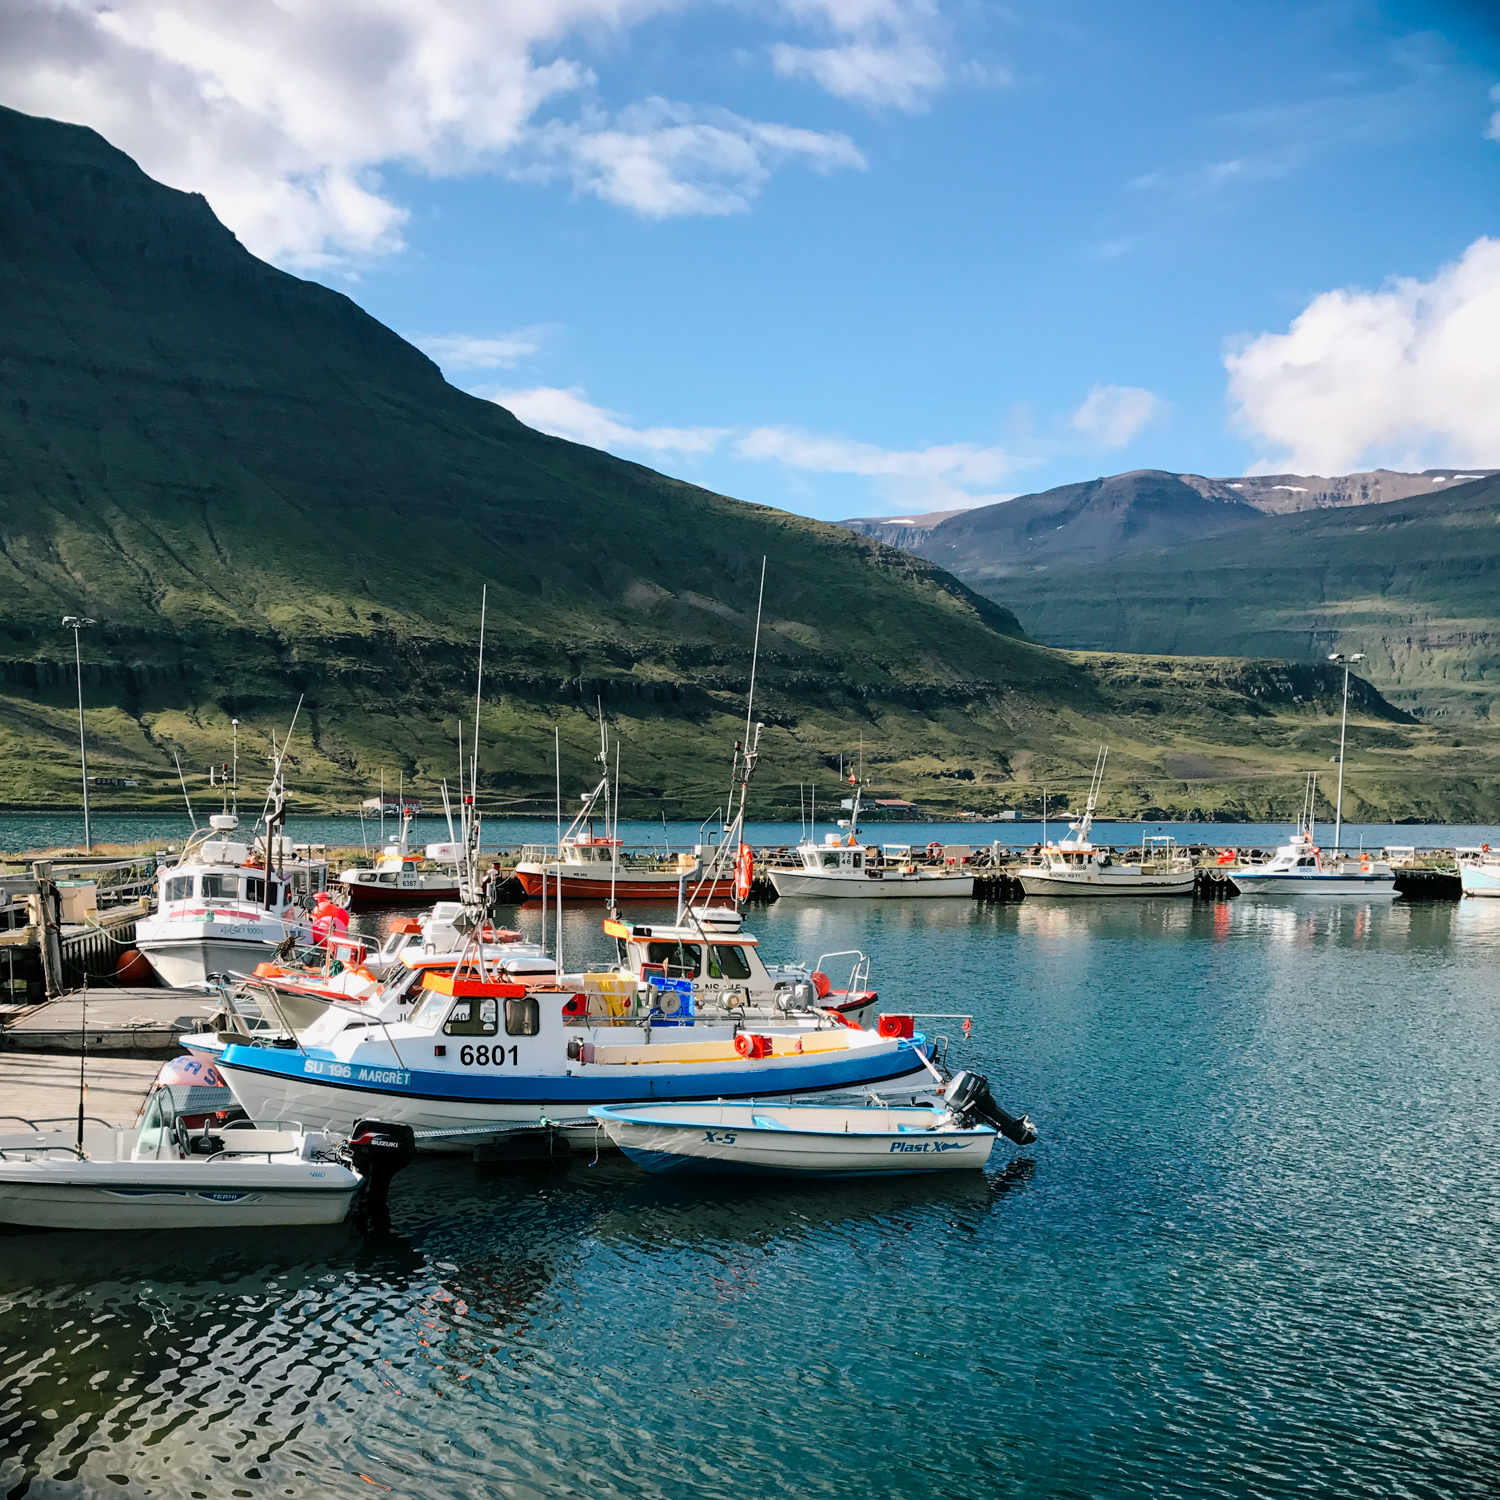 seydisfjordur-views-mountain-waterfall-town-boats.jpg